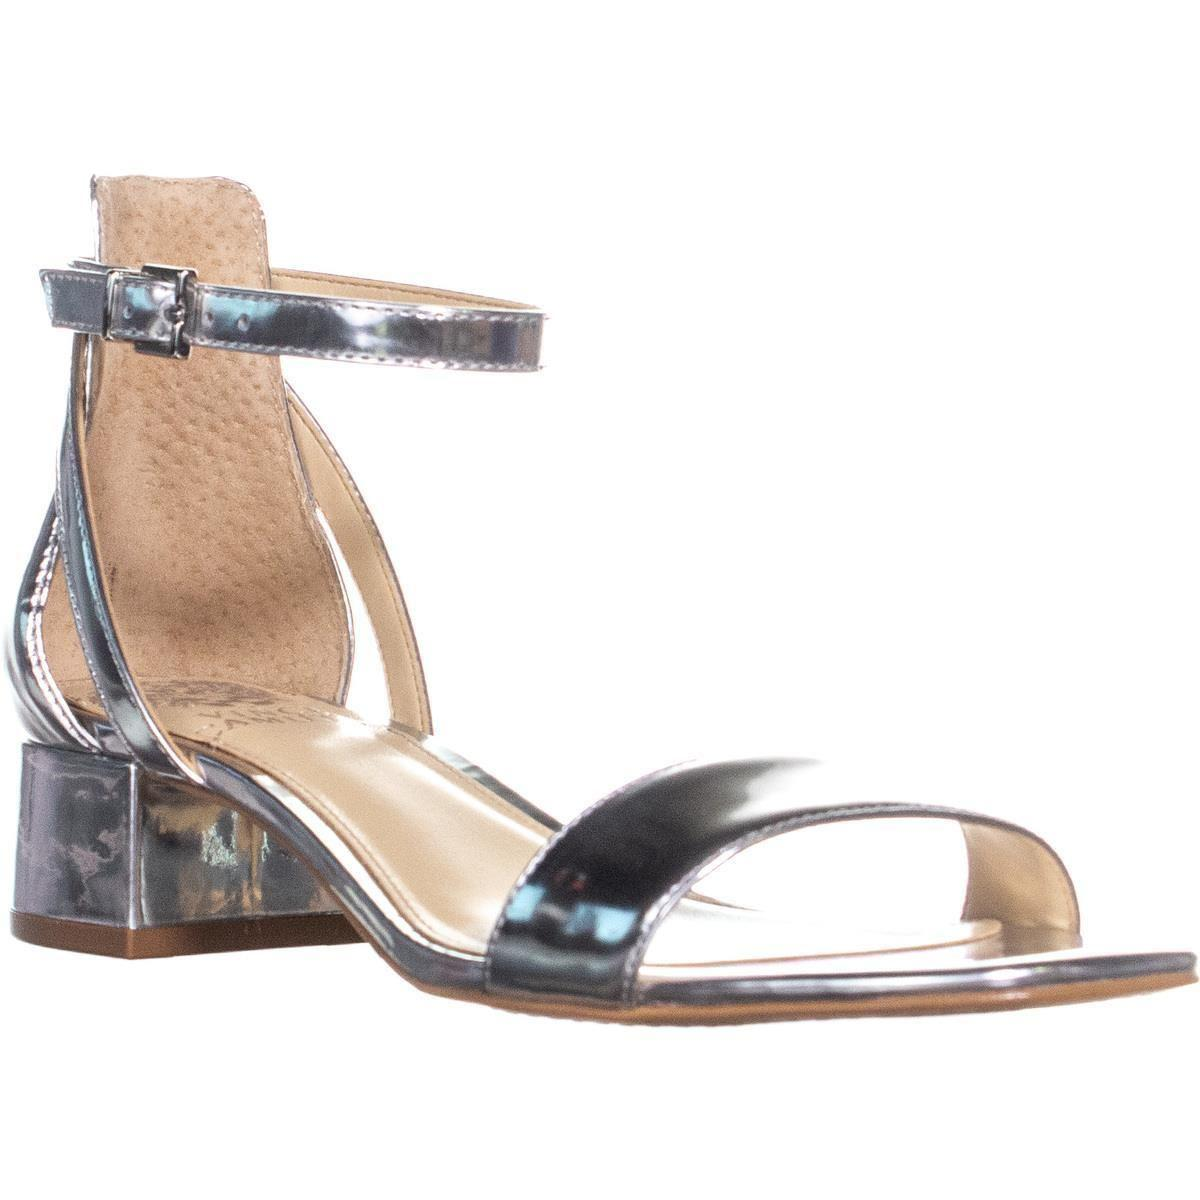 0134784a9ec Lyst - Vince Camuto Shetana Ankle Strap Sandals, Bright Silver in ...